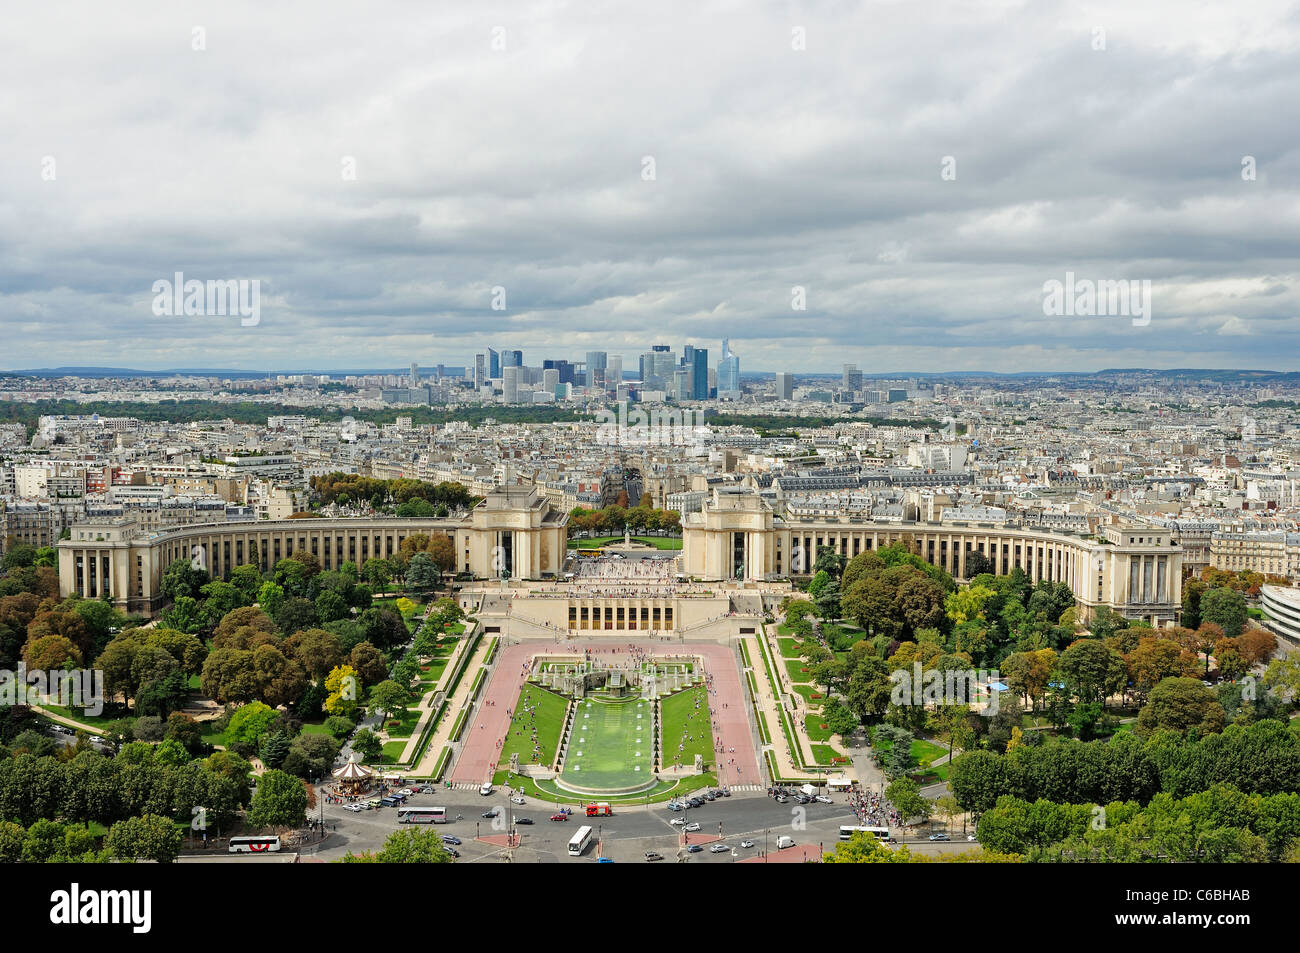 Gardens and esplanade du Trocadéro with the modern buildings of La Defense on the background. Paris, France. - Stock Image